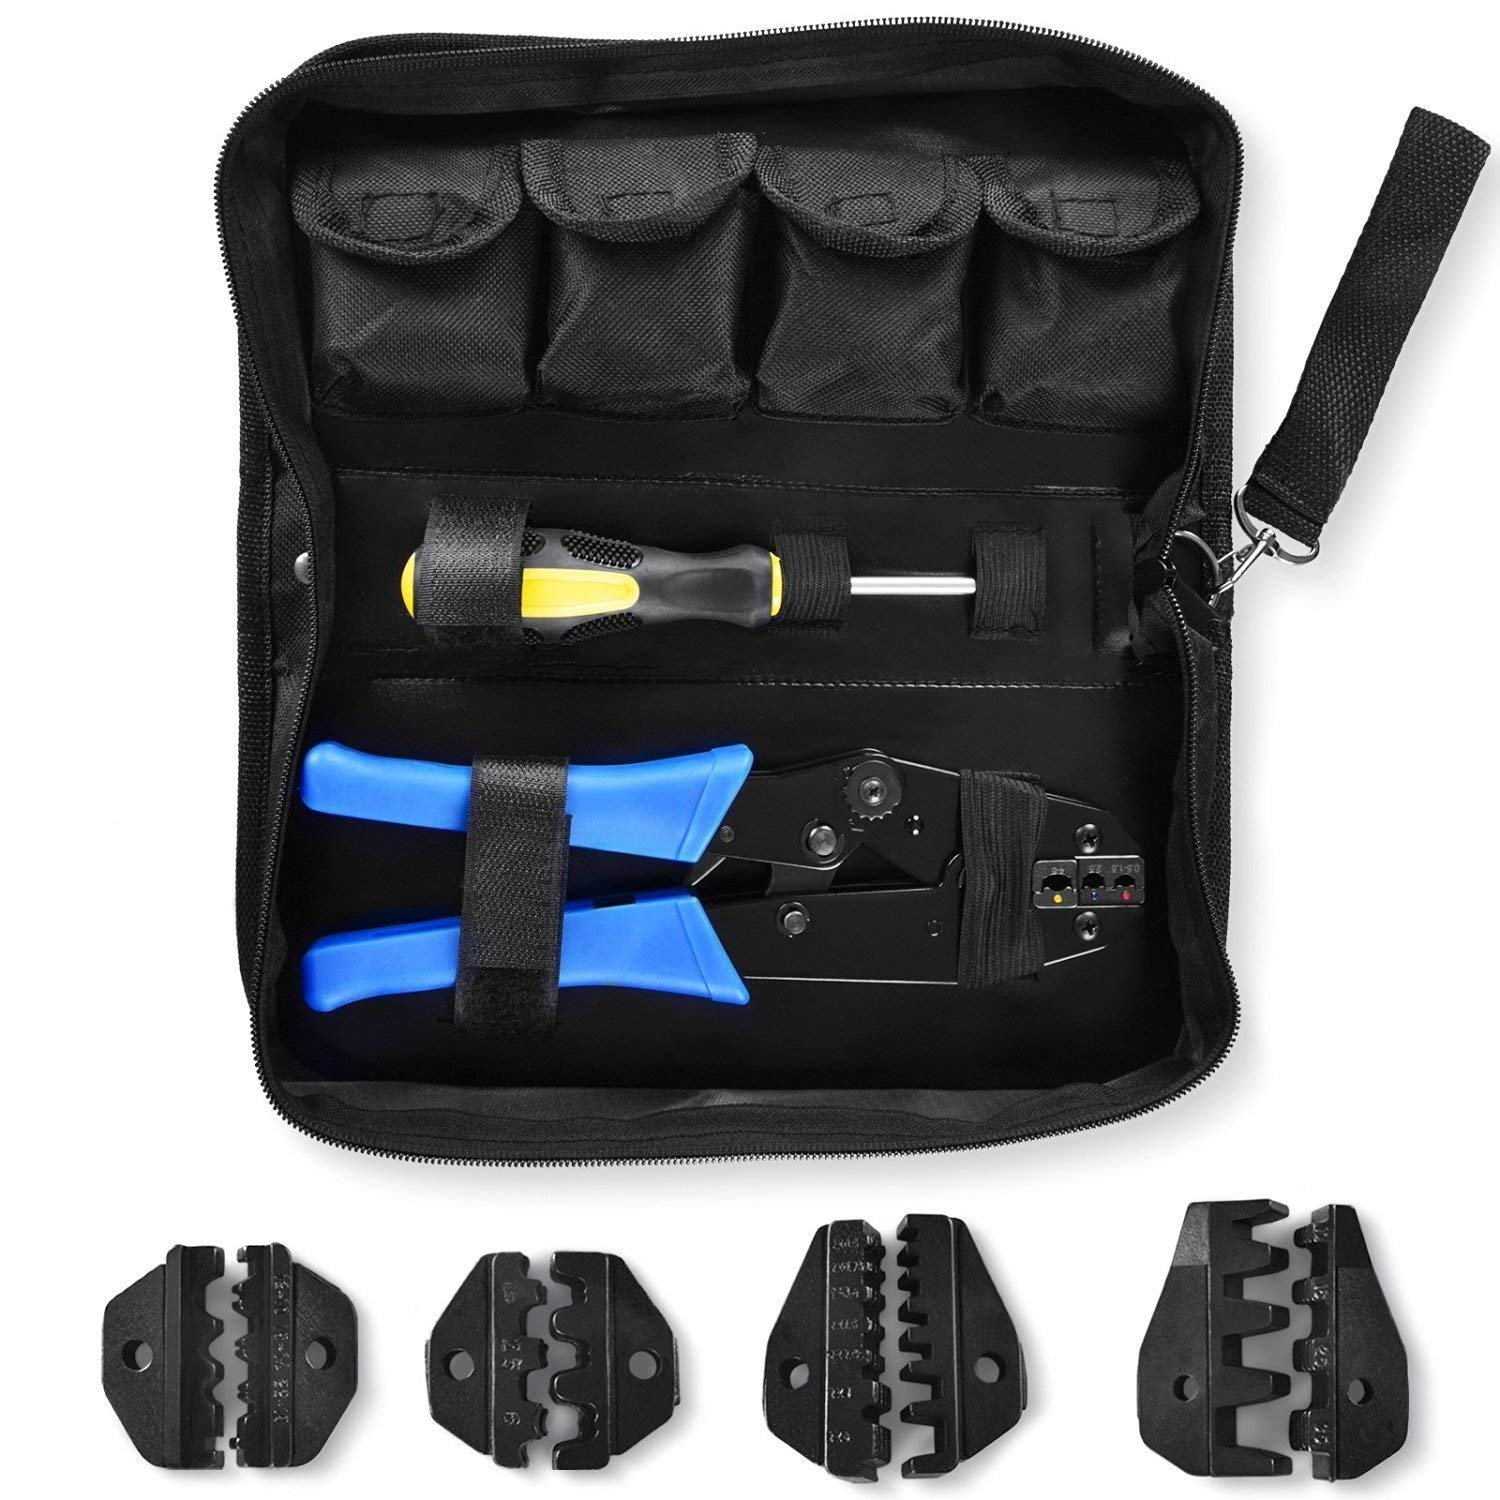 Amzdeal Crimping Tool Kit Ratchet Terminal Crimper Tool 20-2 AWG 5 Interchangeable Die Set for Insulated and Non-insulated Terminals with Storage Bag - Blue